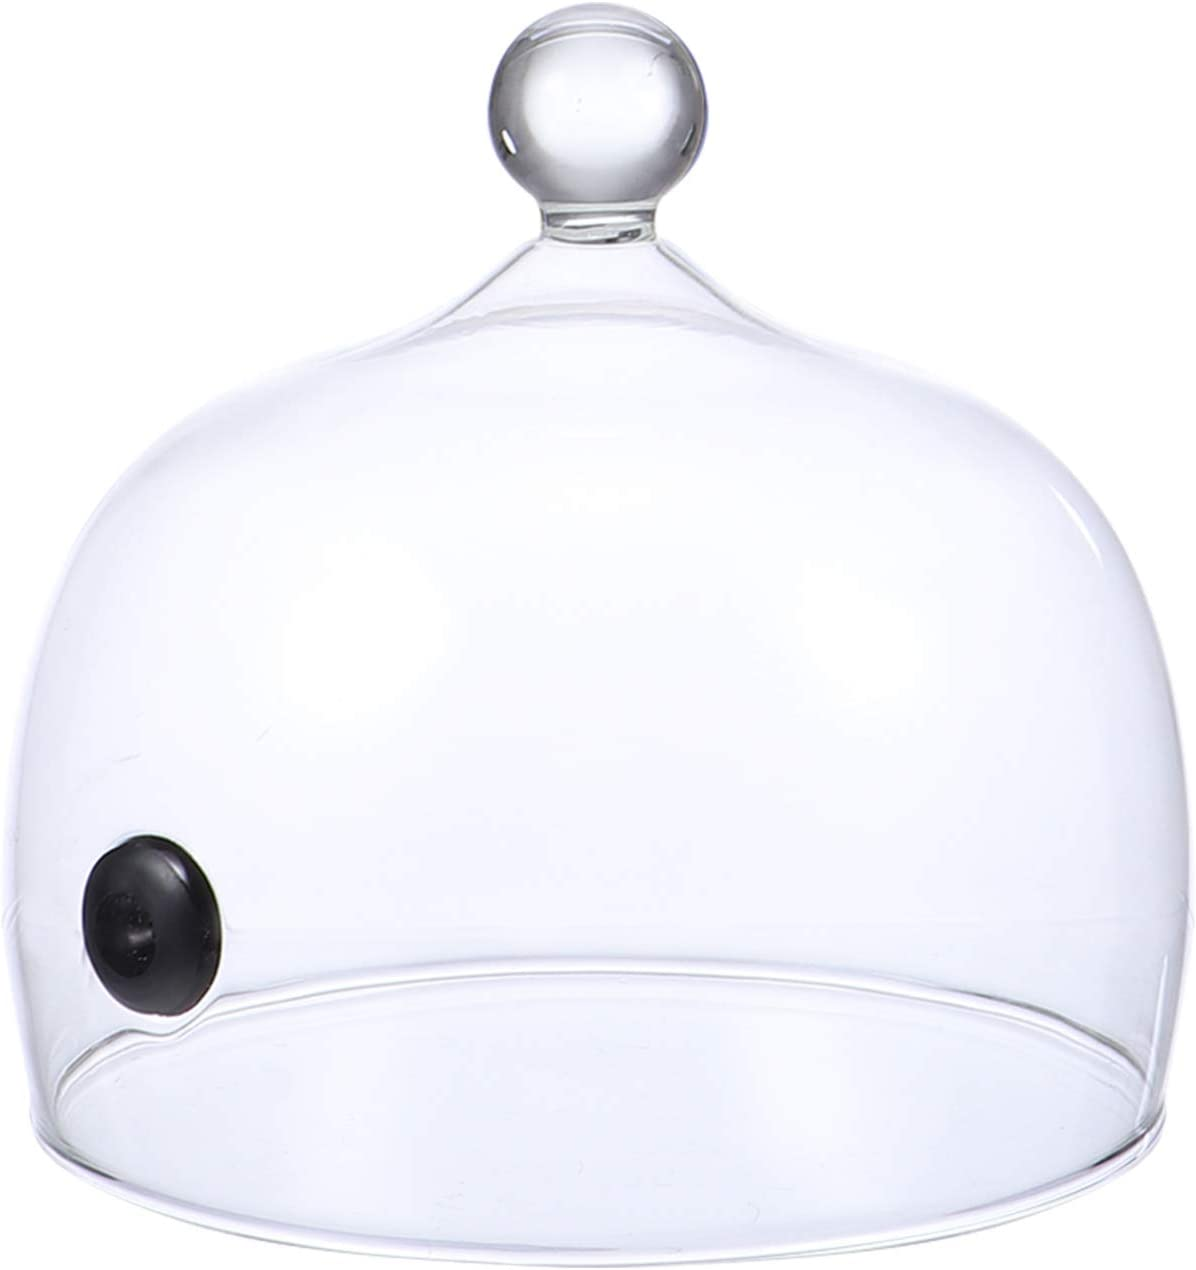 Cabilock Smoking Cloche Dome Cover Smoke Infuser Cloche Bell Jar Glass Display Dome Kitchen Food Cover for Smoke Infuser Smoker 15cm